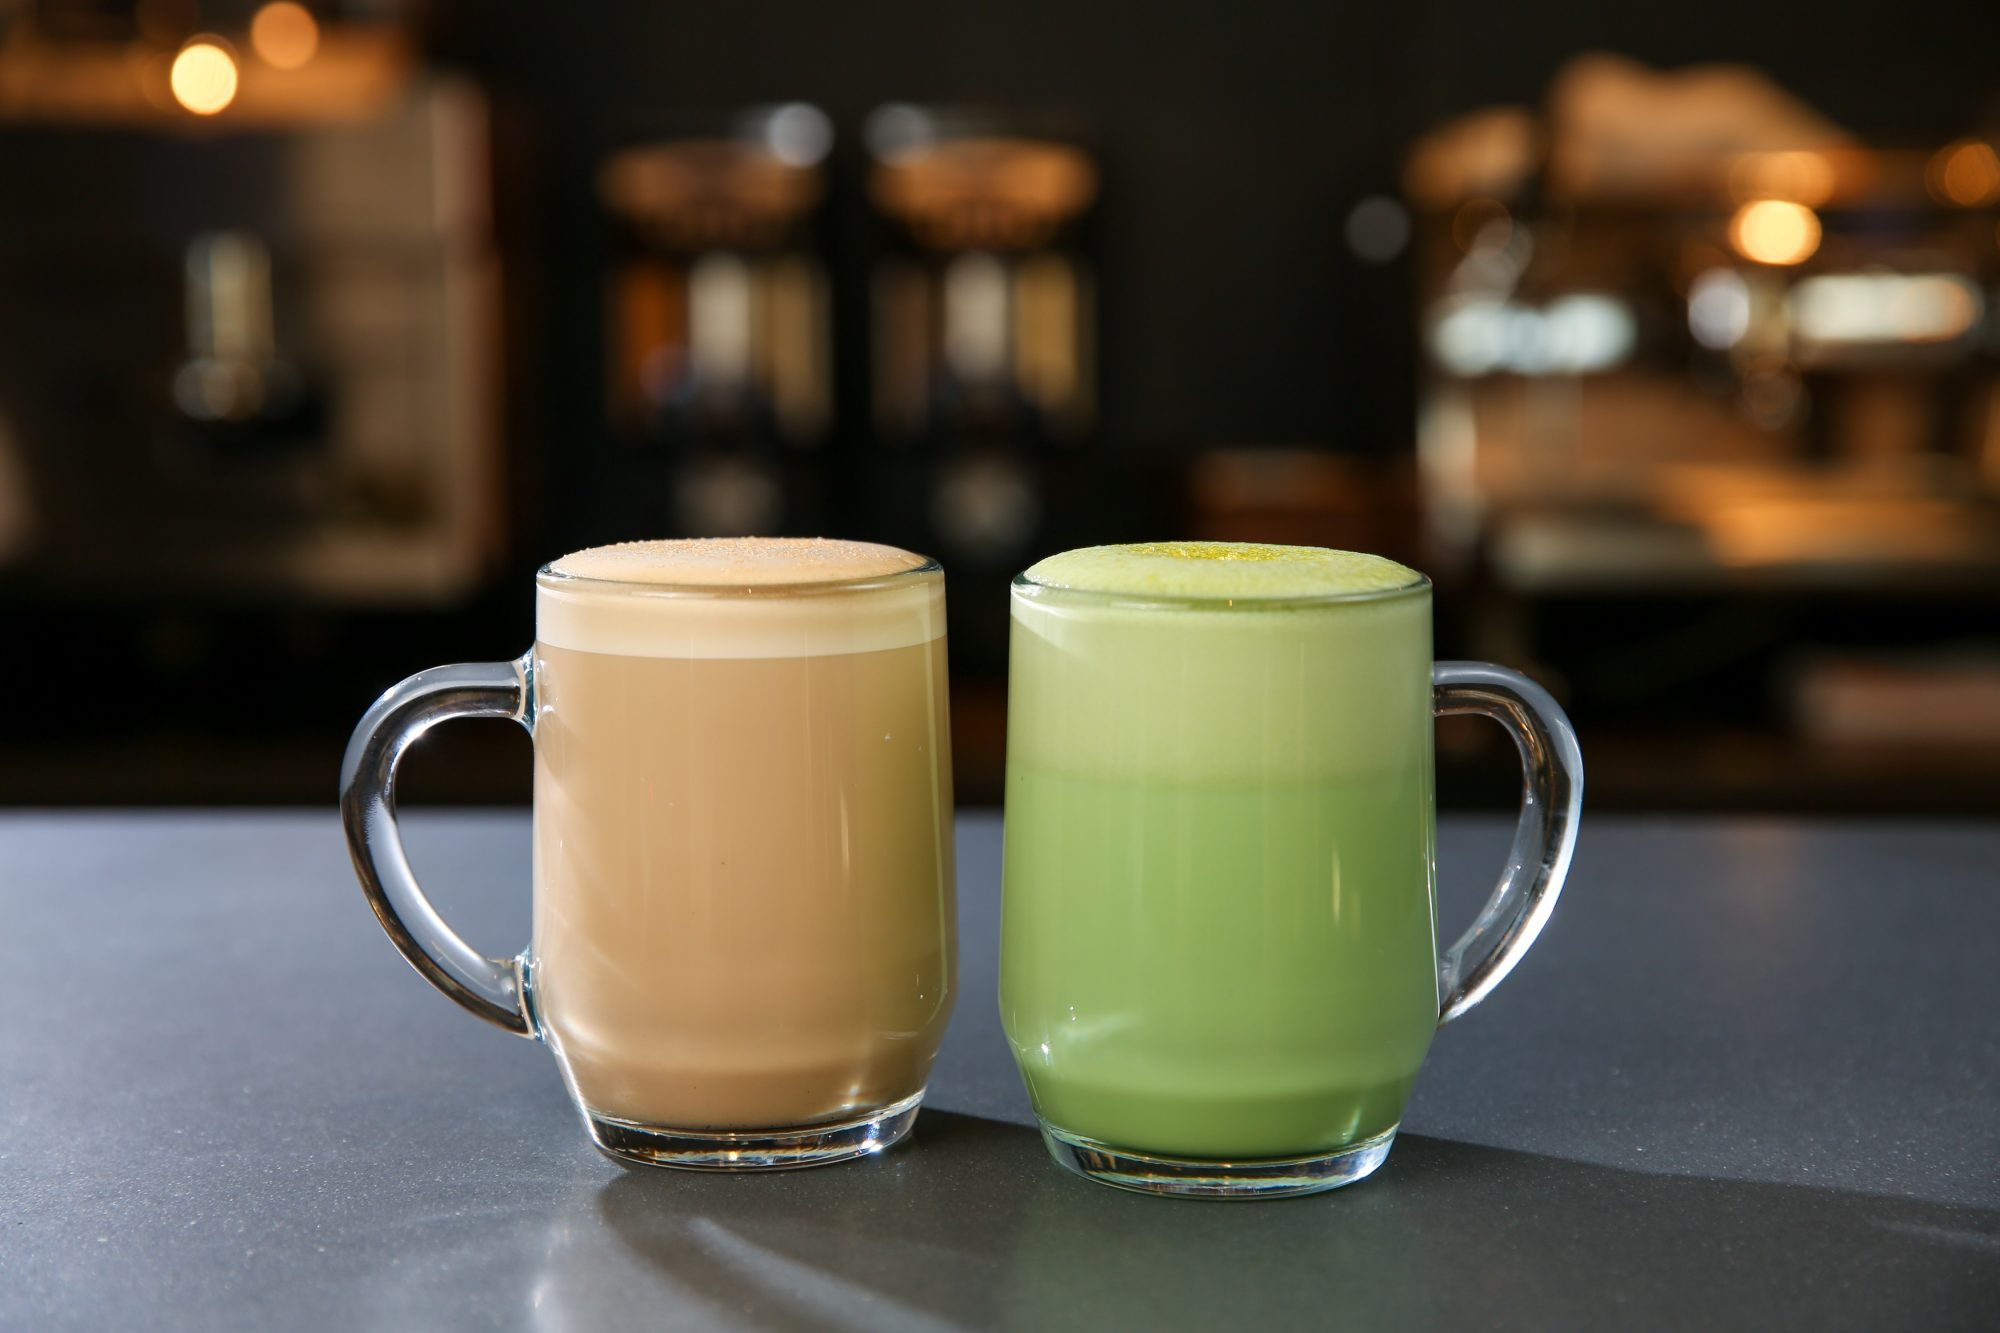 smoked_butterscotch-citrus_green_tea_latte.jpg